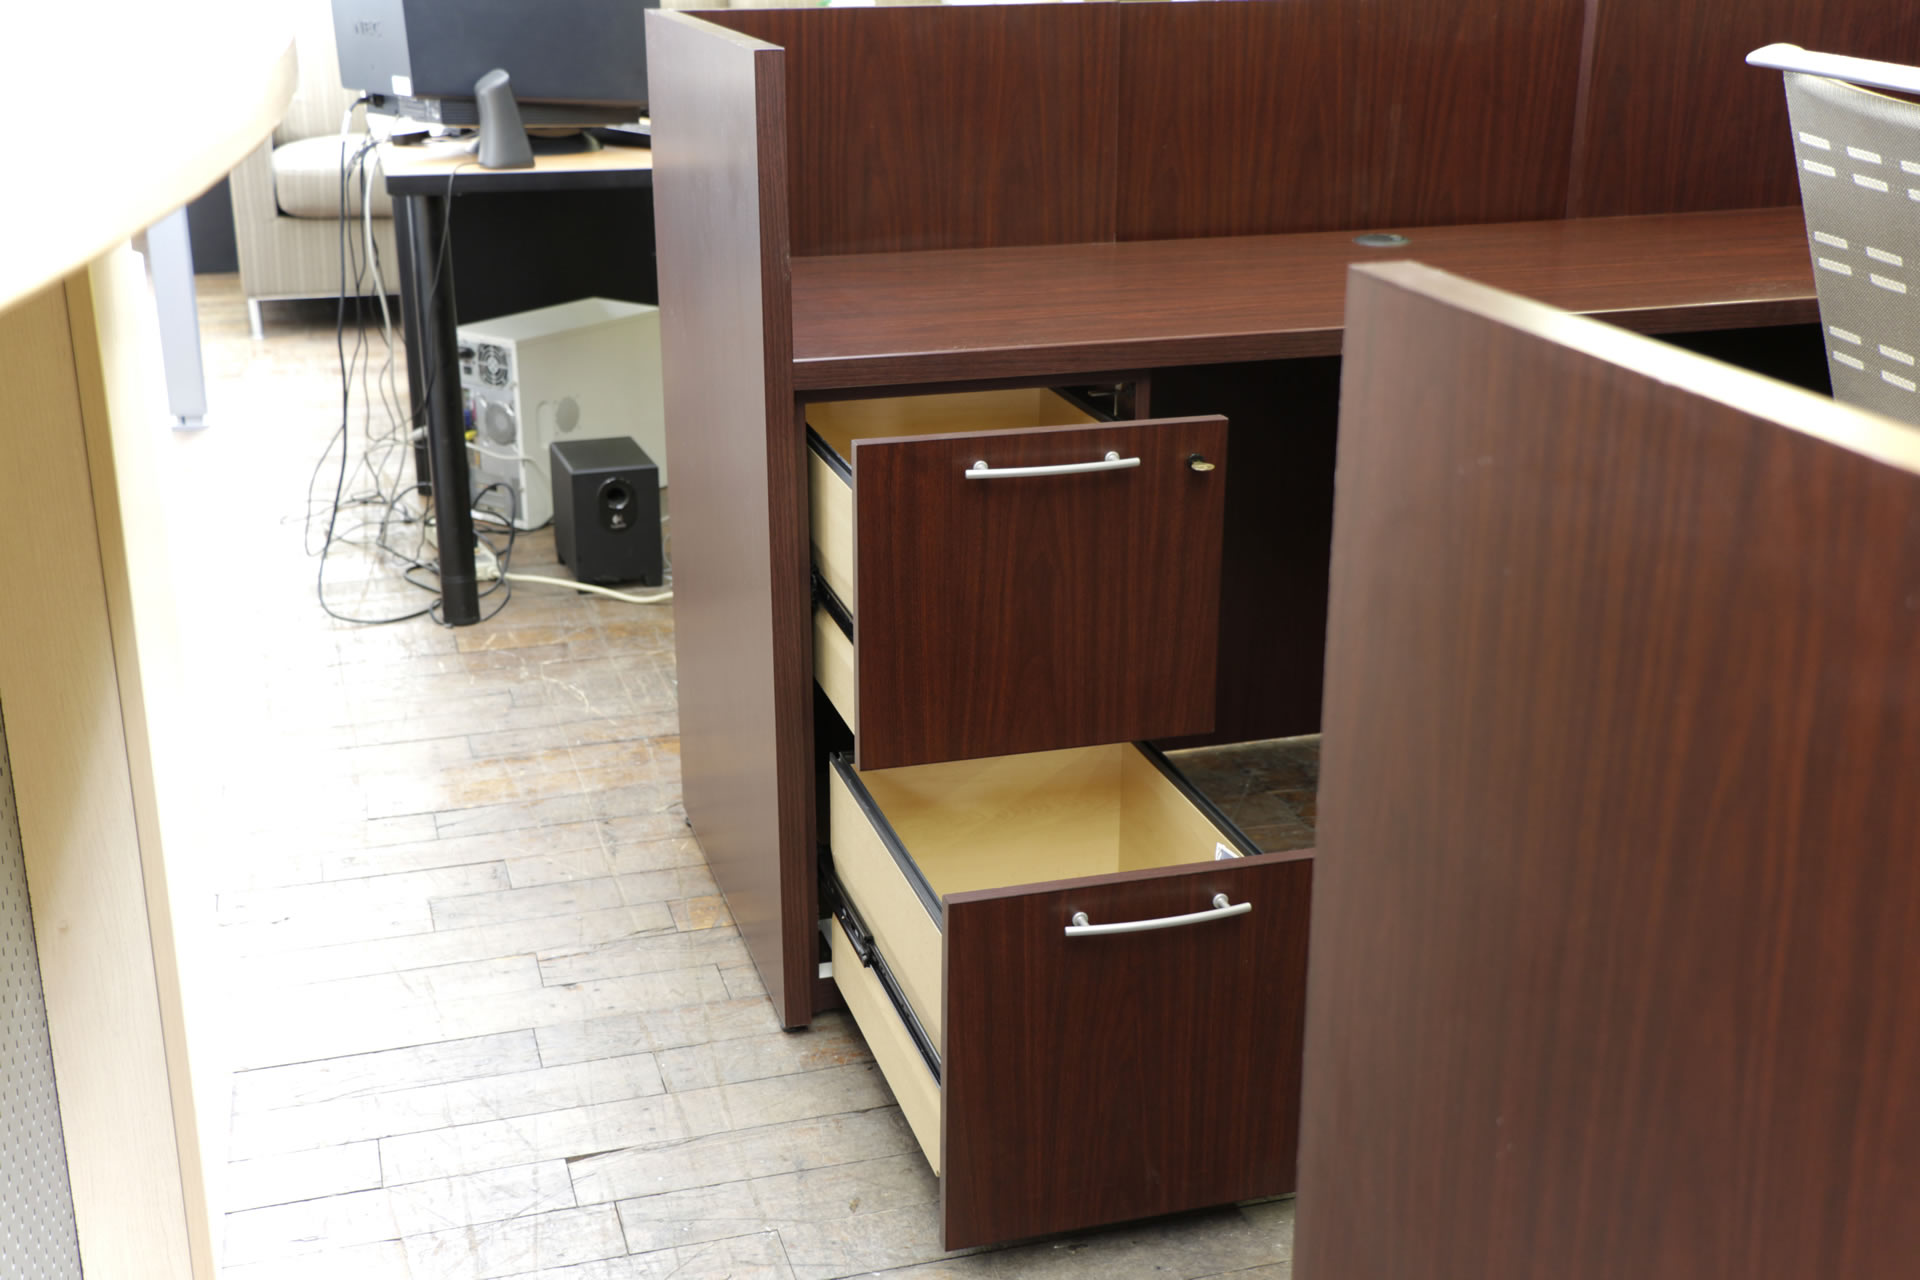 peartreeofficefurniture_peartreeofficefurniture_mg_5329.jpg